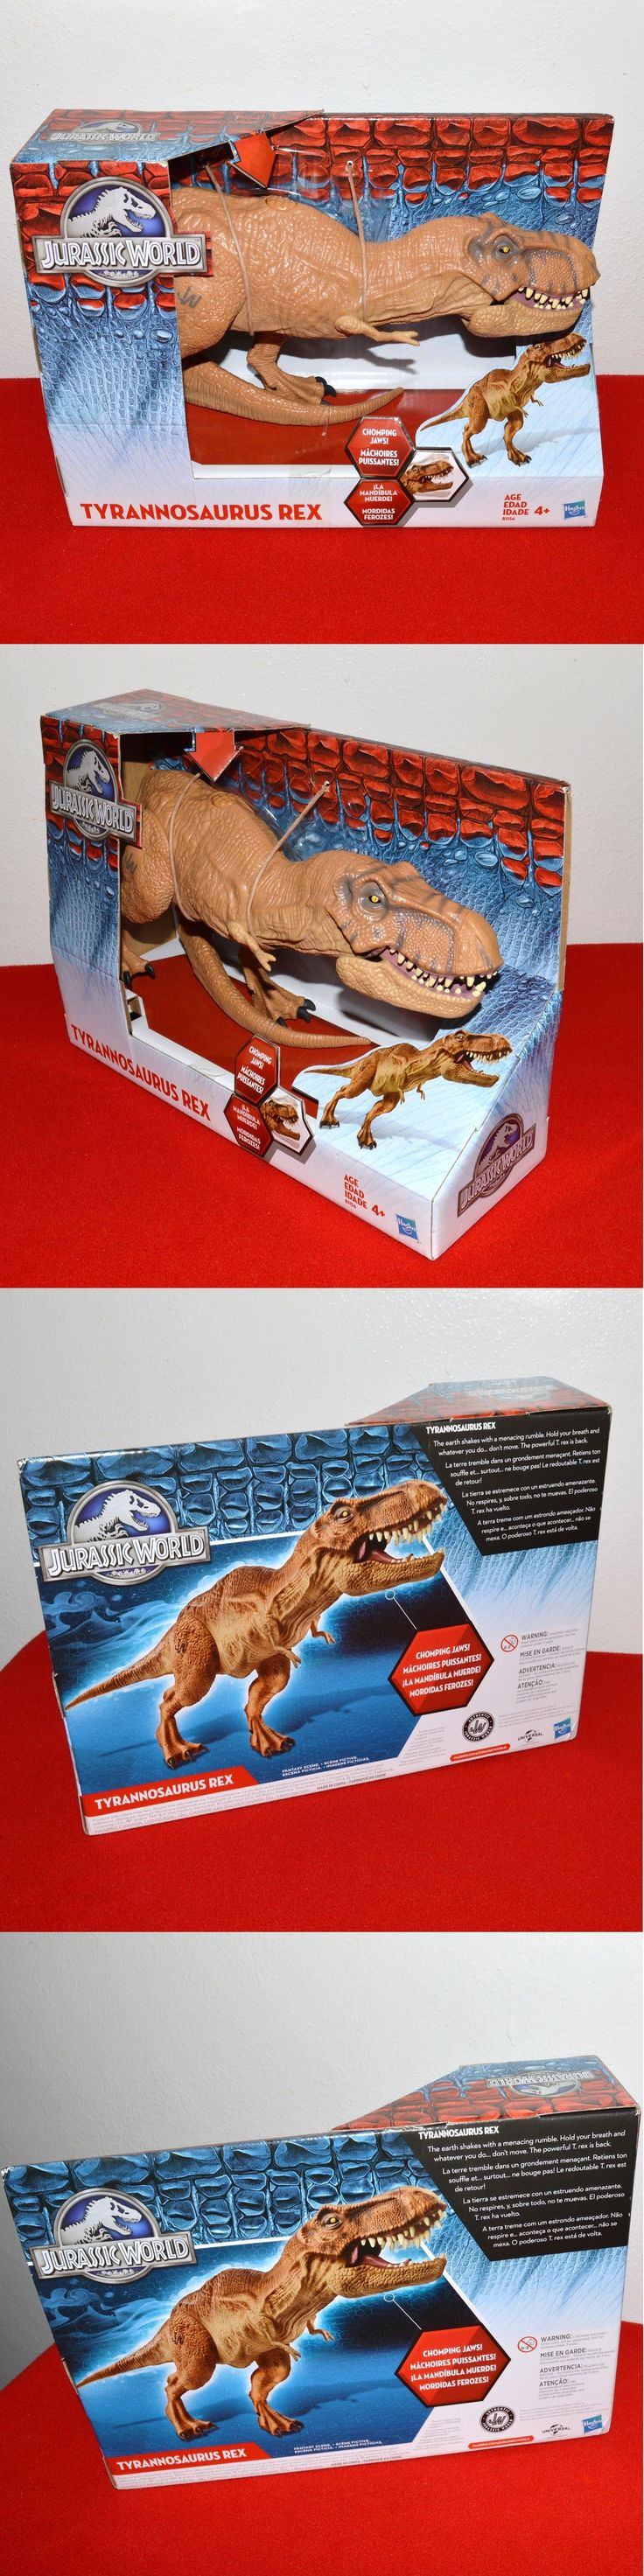 Animals and Dinosaurs 175692: Jurassic World Tyrannosaurus Rex Action Figure Chomping Toy 16 T-Rex Park -> BUY IT NOW ONLY: $35.99 on eBay!